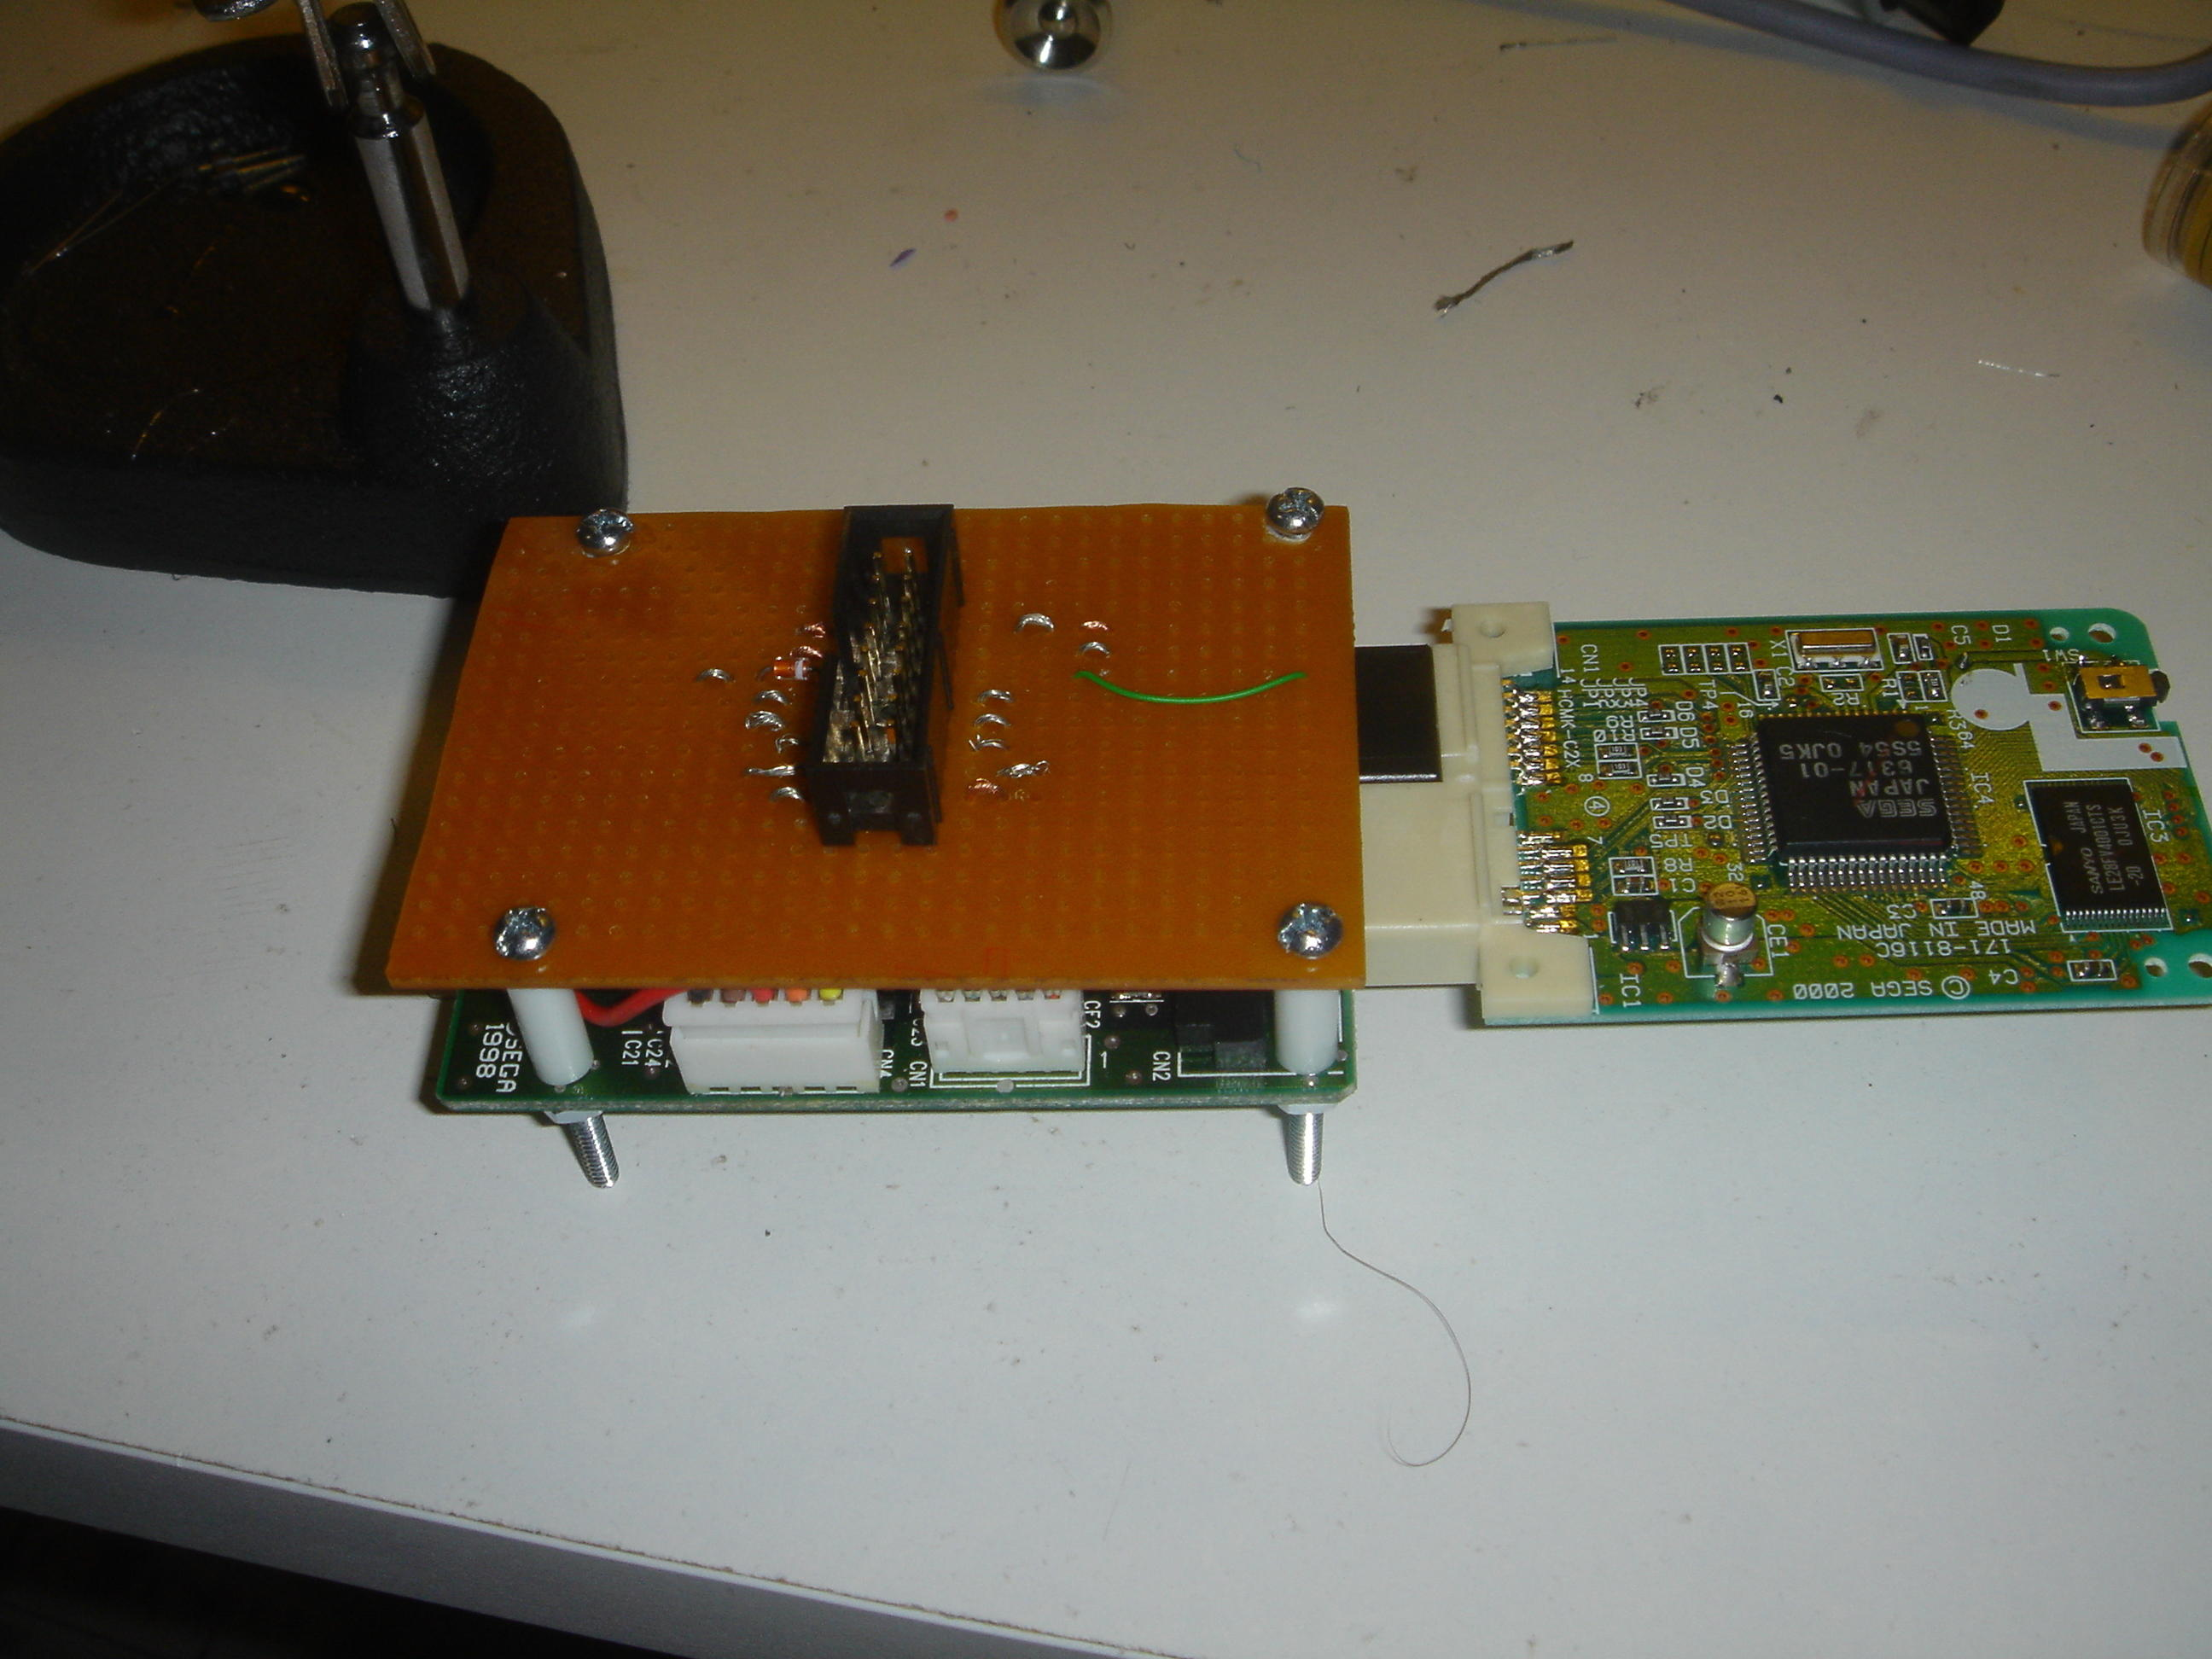 How to Piggyback a Dreamcast Controller on a Universal PCB